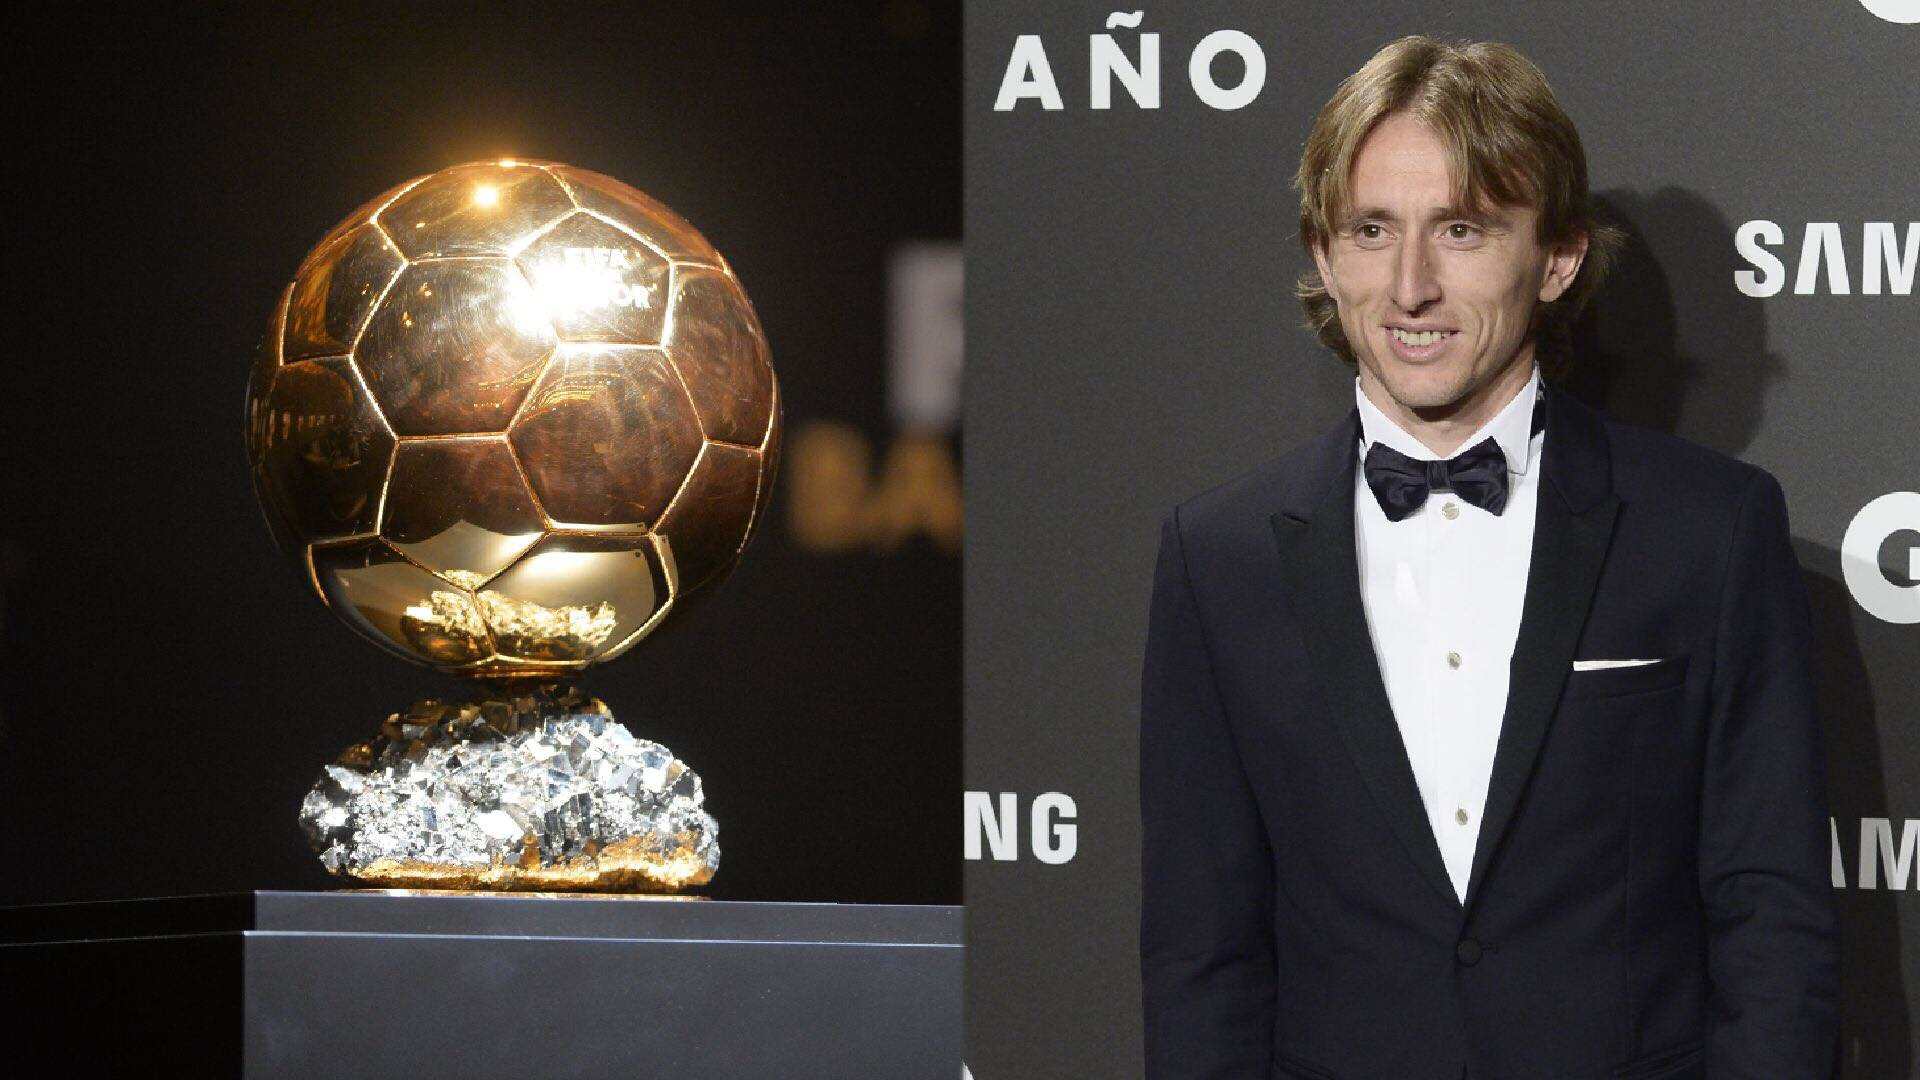 Modric's Odds For Ballon d'Or Slashed After GQ Award - News